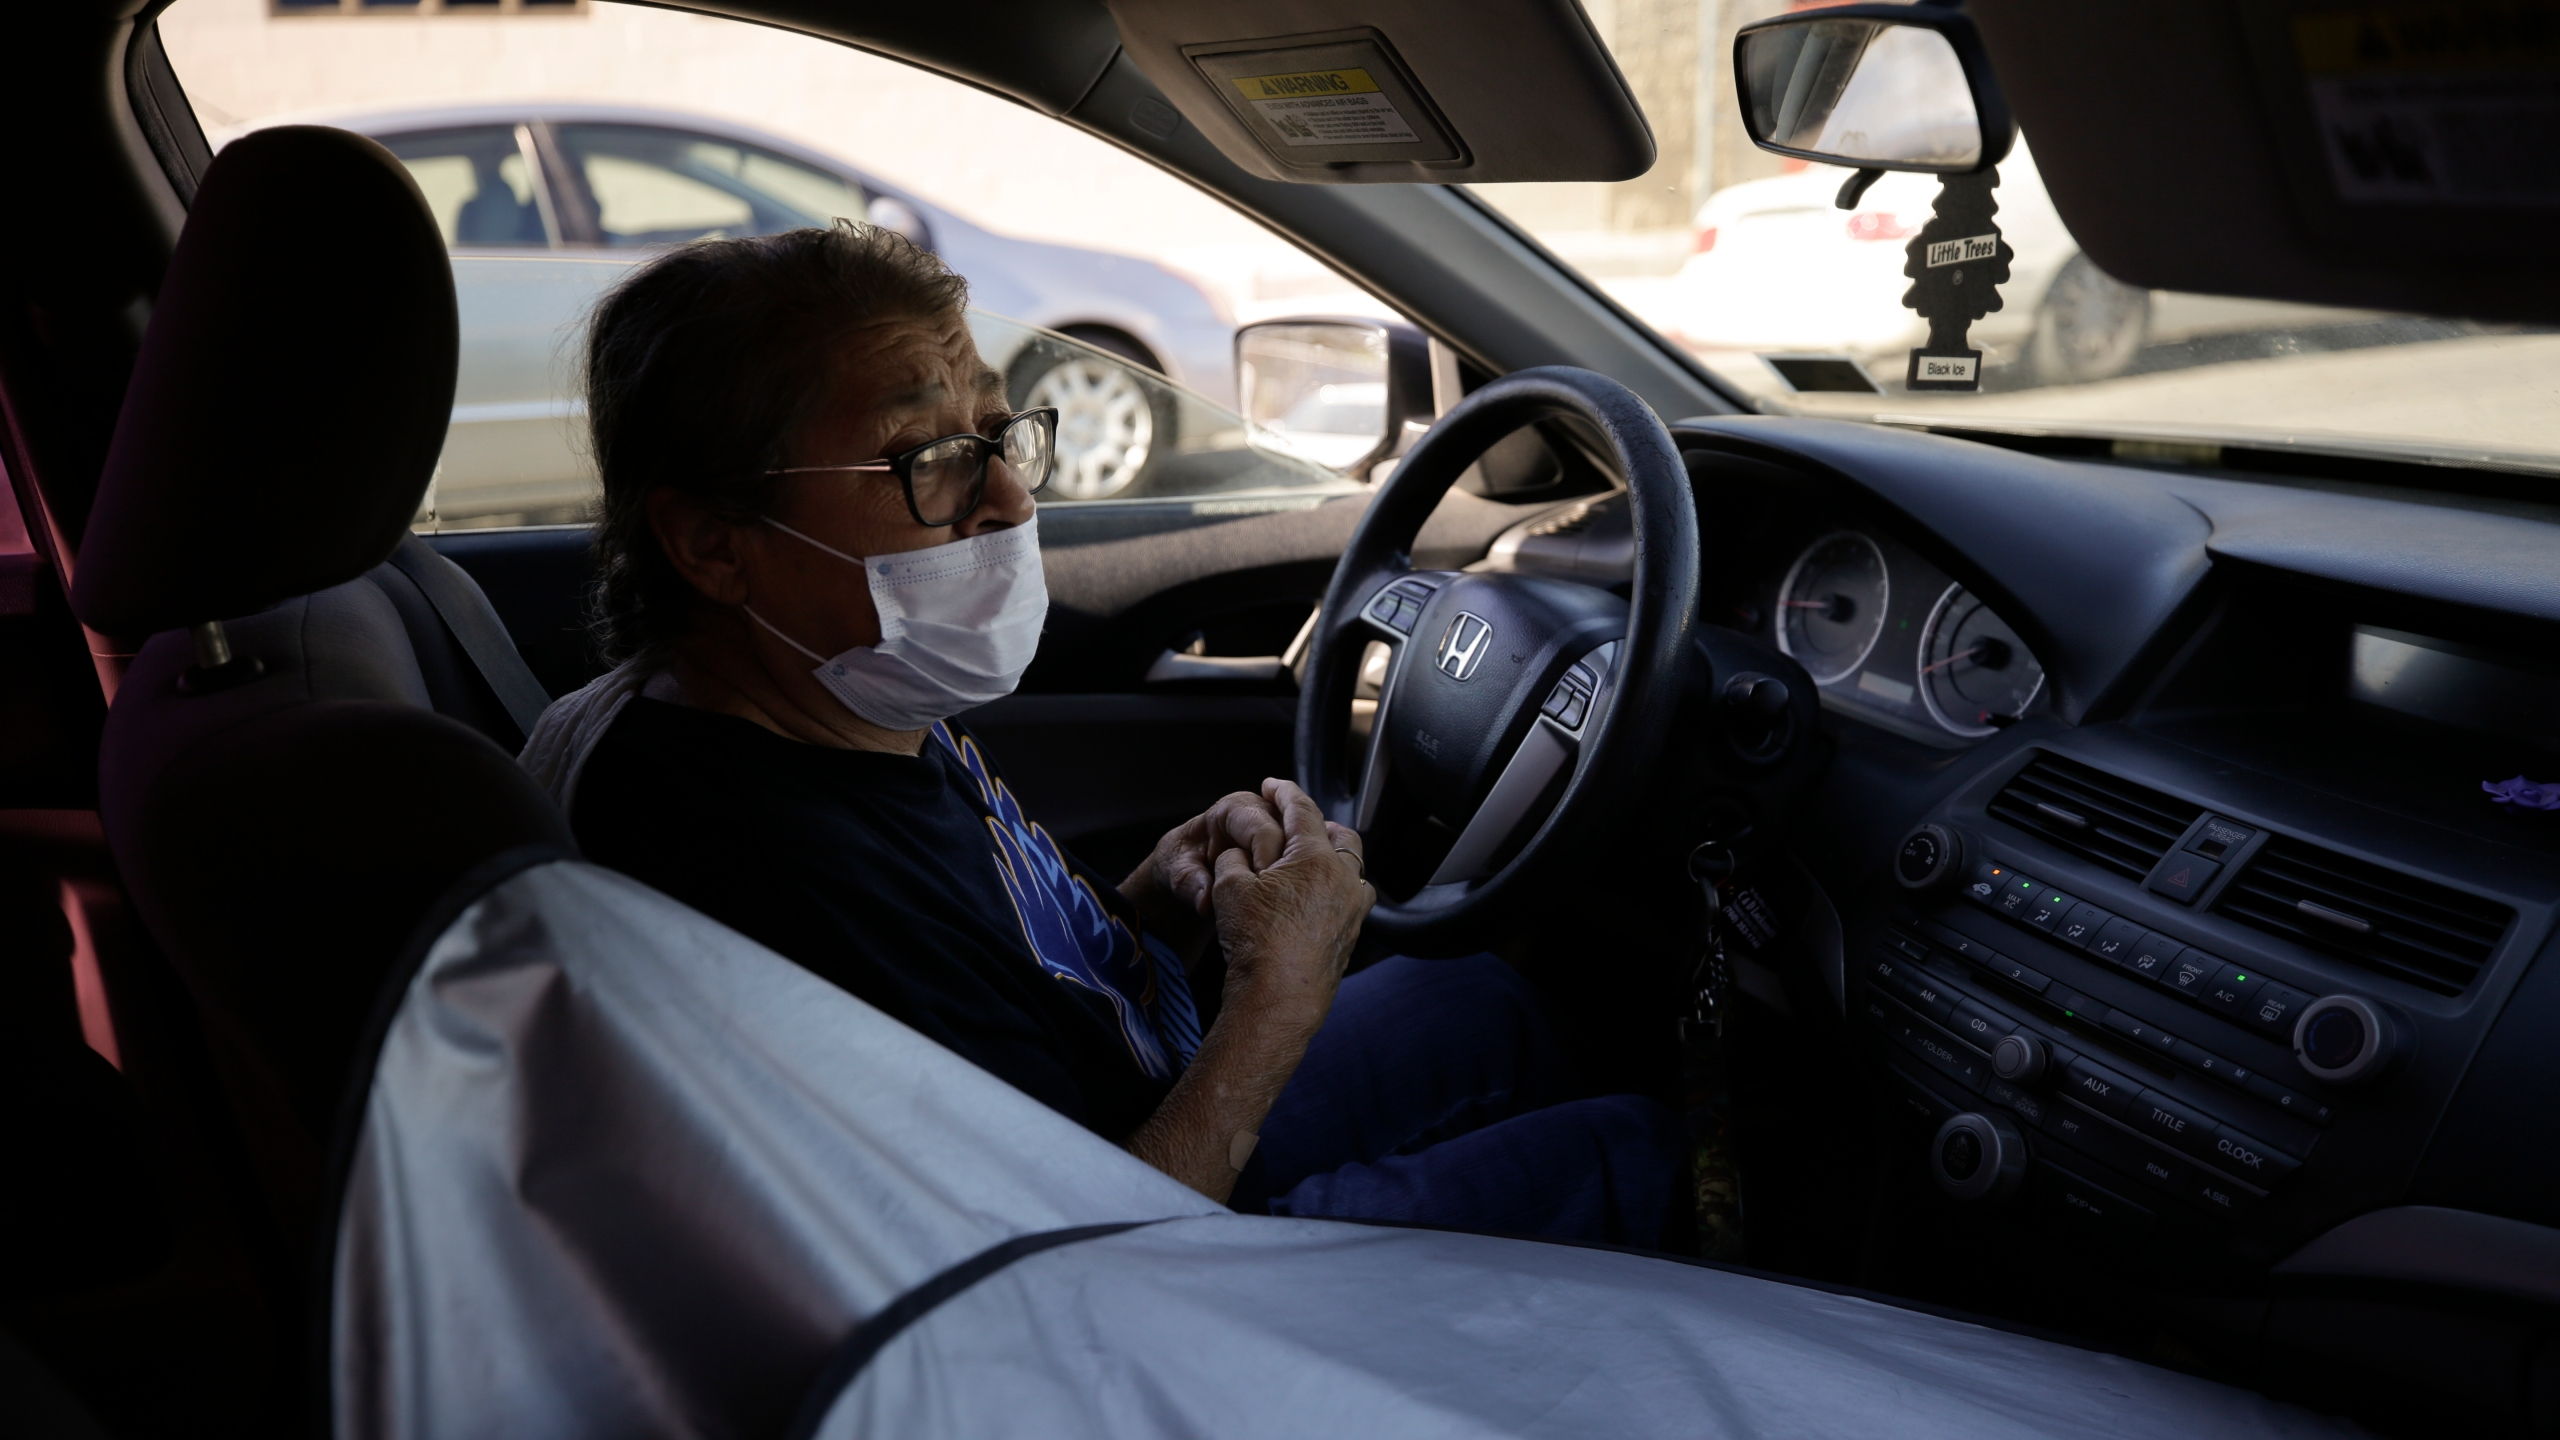 Marta Rosales waits in line for food at a distribution center Thursday, July 23, 2020, in Brawley, Calif. Rosales, who suffers from various health issues, rarely leaves her home during the coronavirus outbreak. She says the food she receives at the distribution center has been a savior. (AP Photo/Gregory Bull)